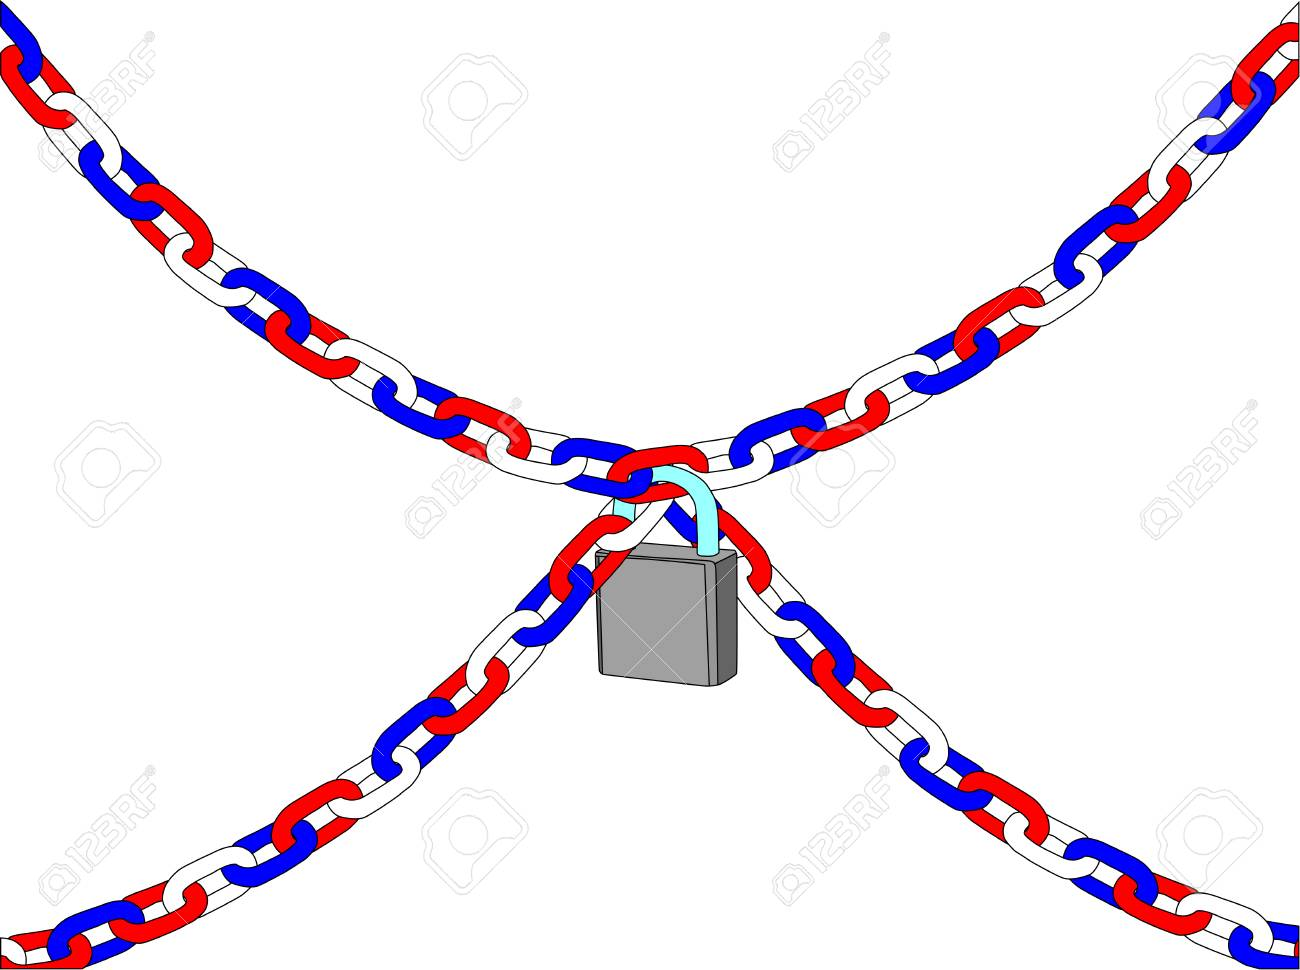 vector - chain with padlock isolated on white background Stock Vector - 4921125